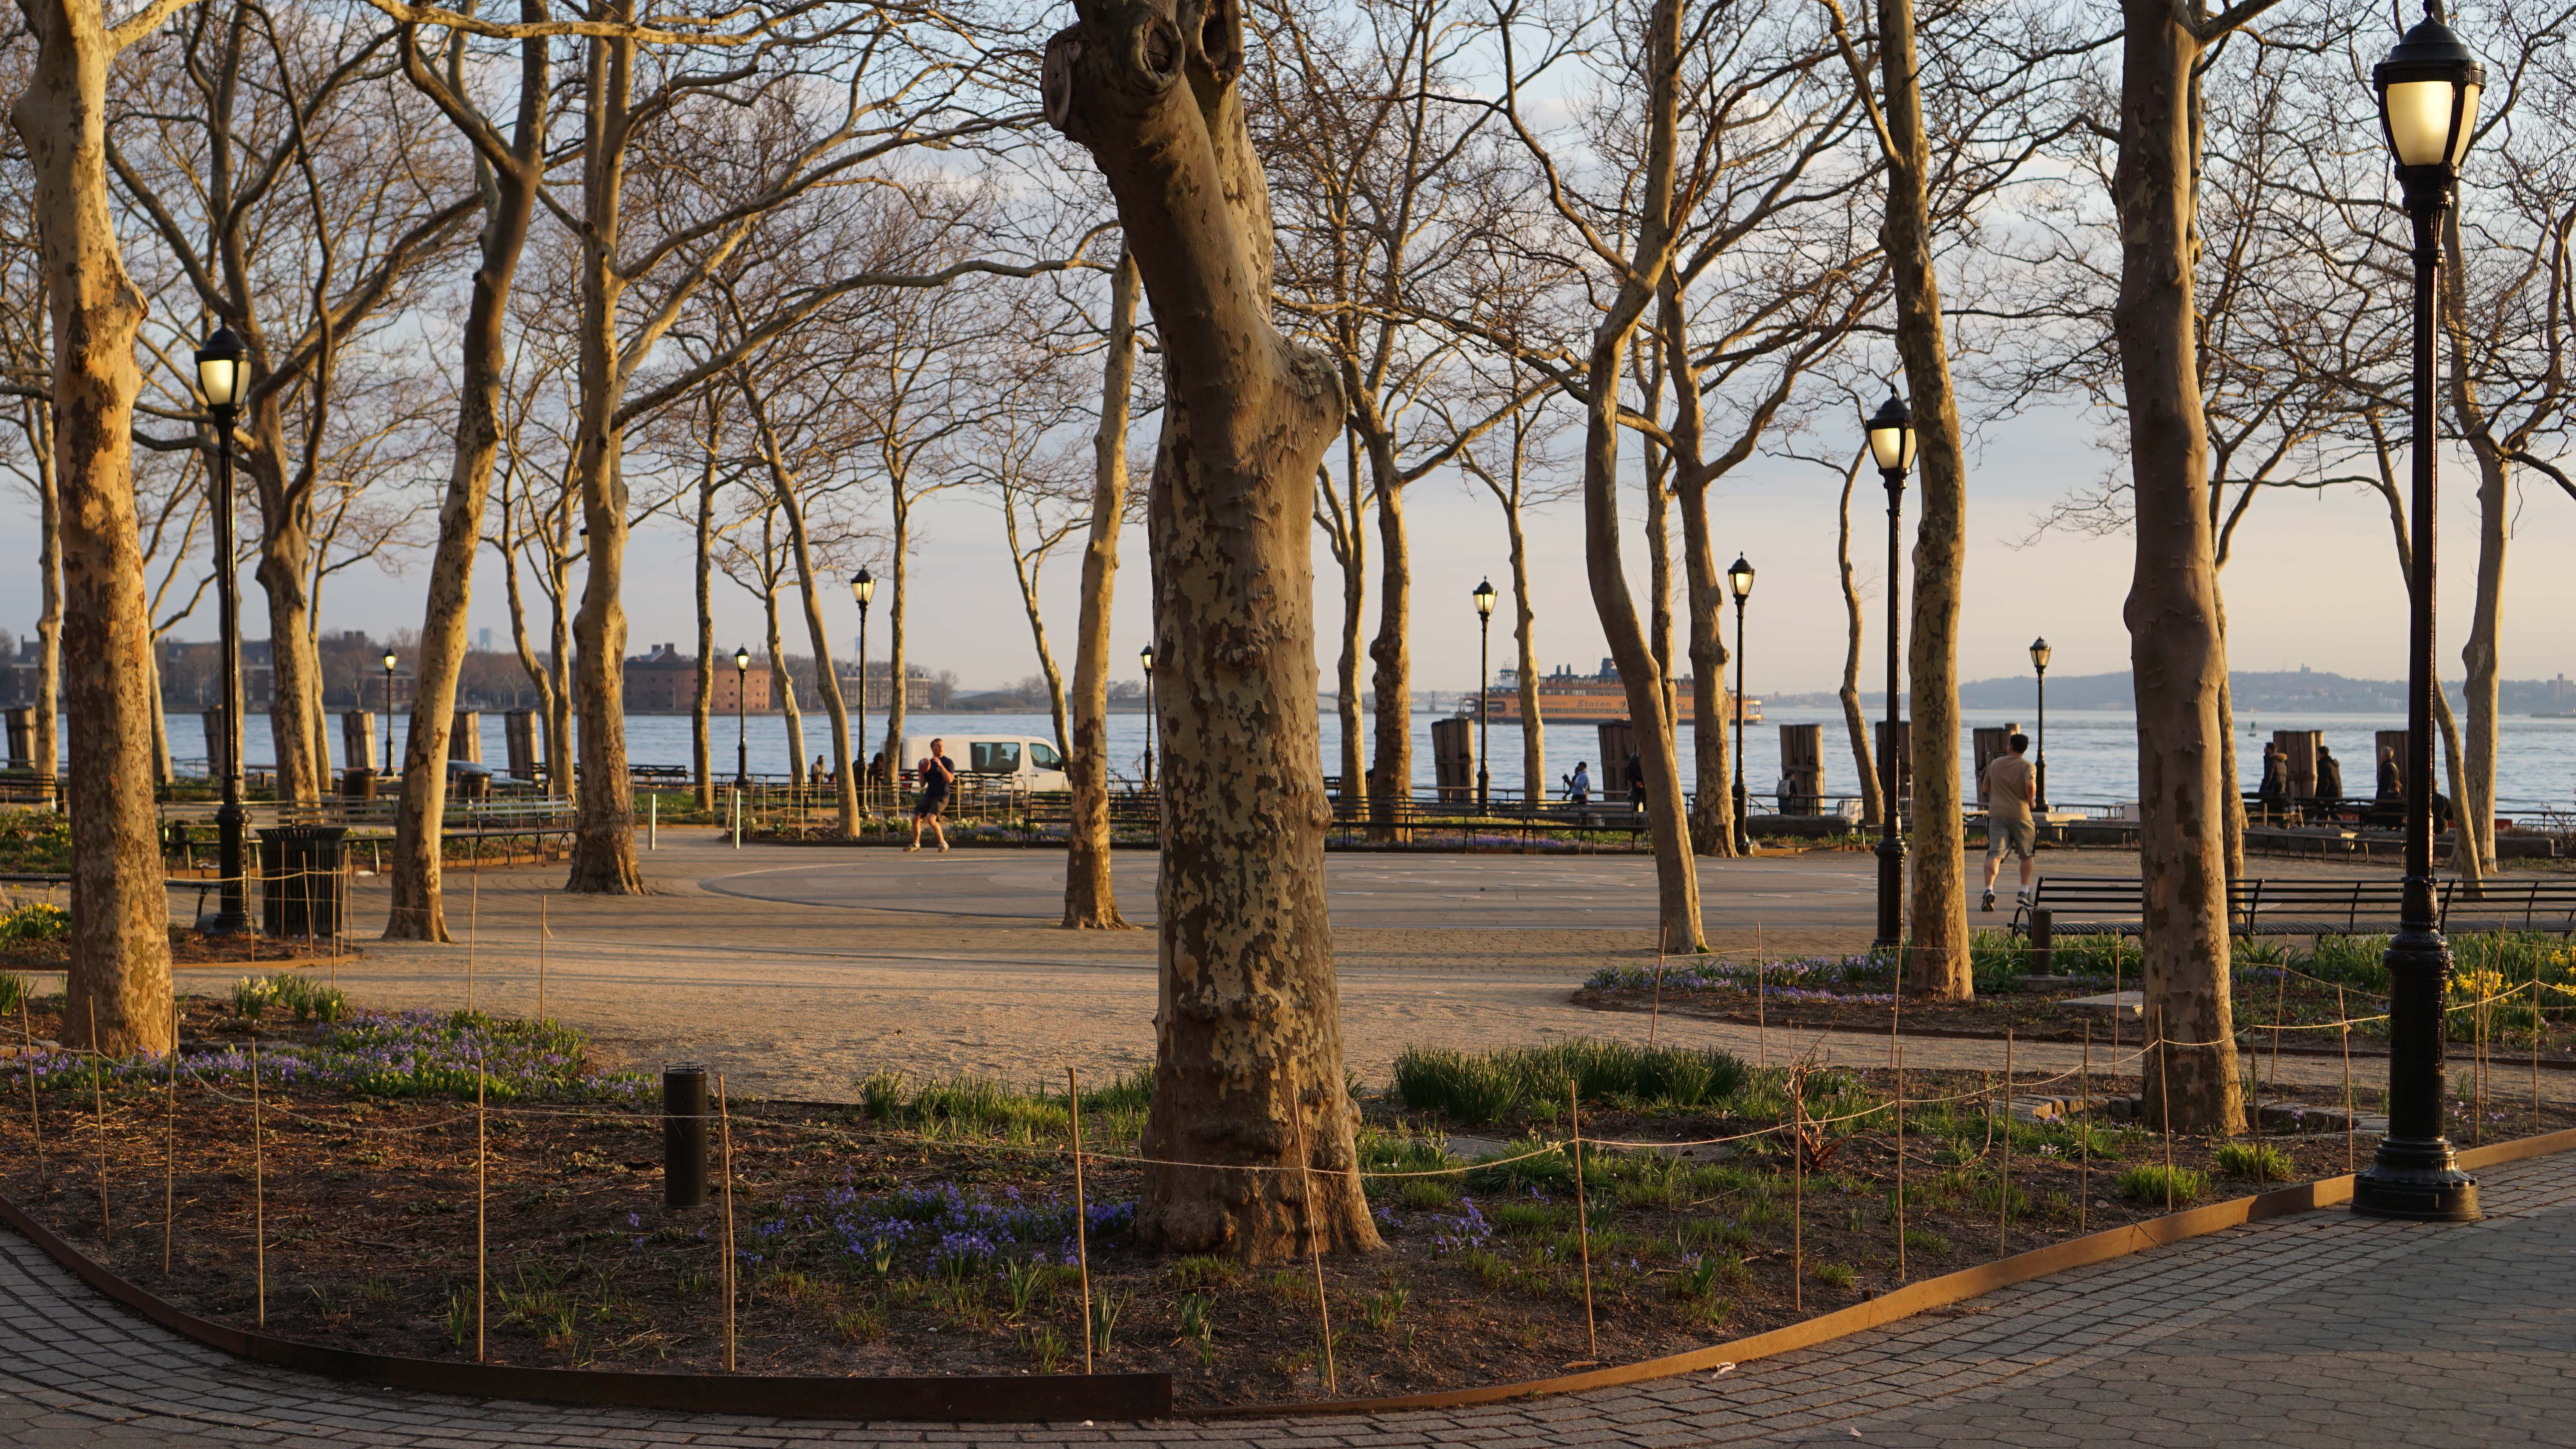 Battery Park Conservancy open 7